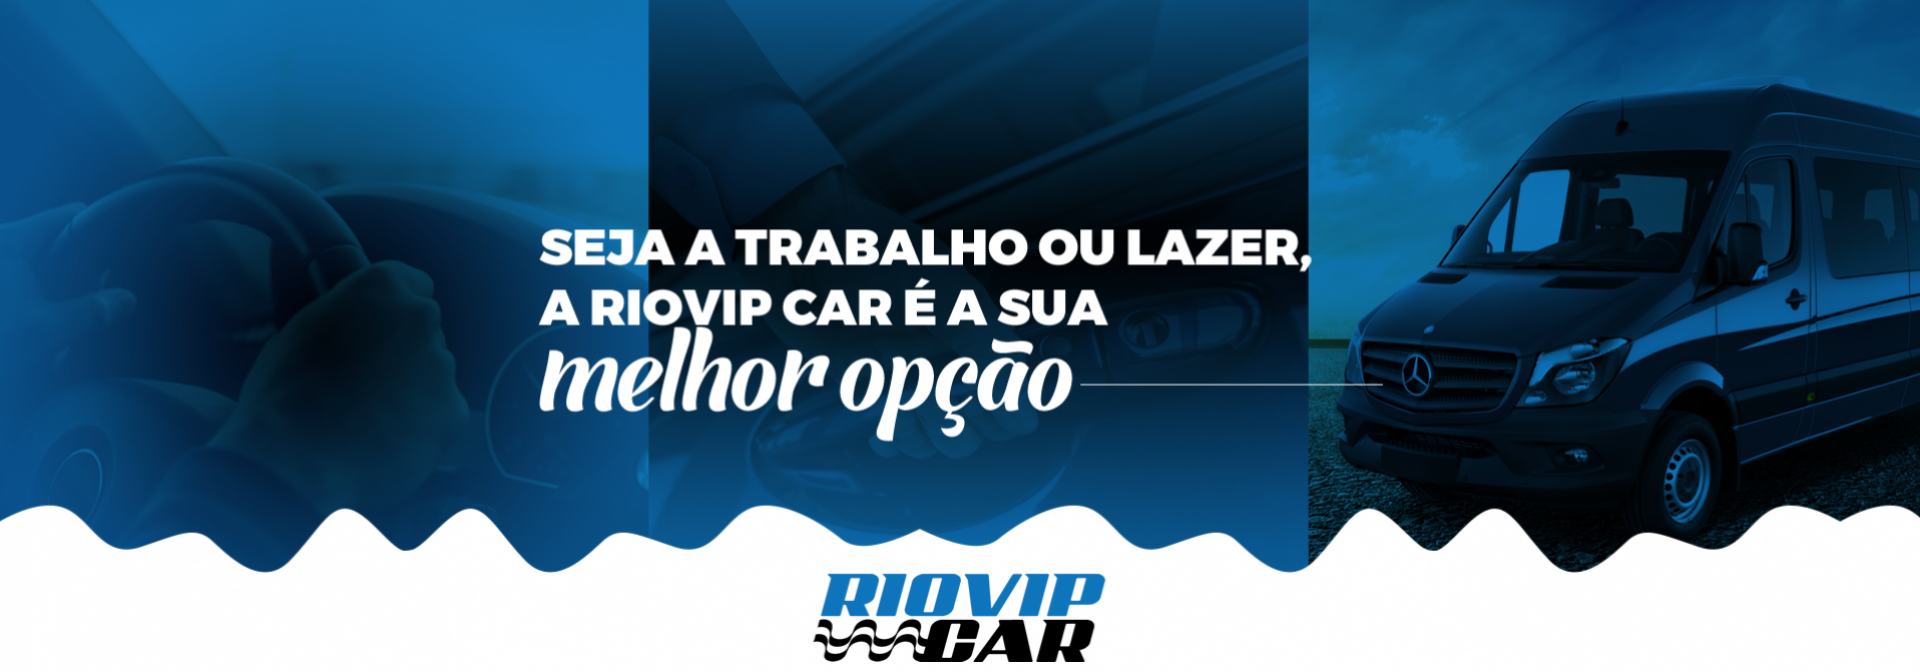 http://www.riovipcar.com.br/imagens/uploads/imgs/banners/1920x672/4.png